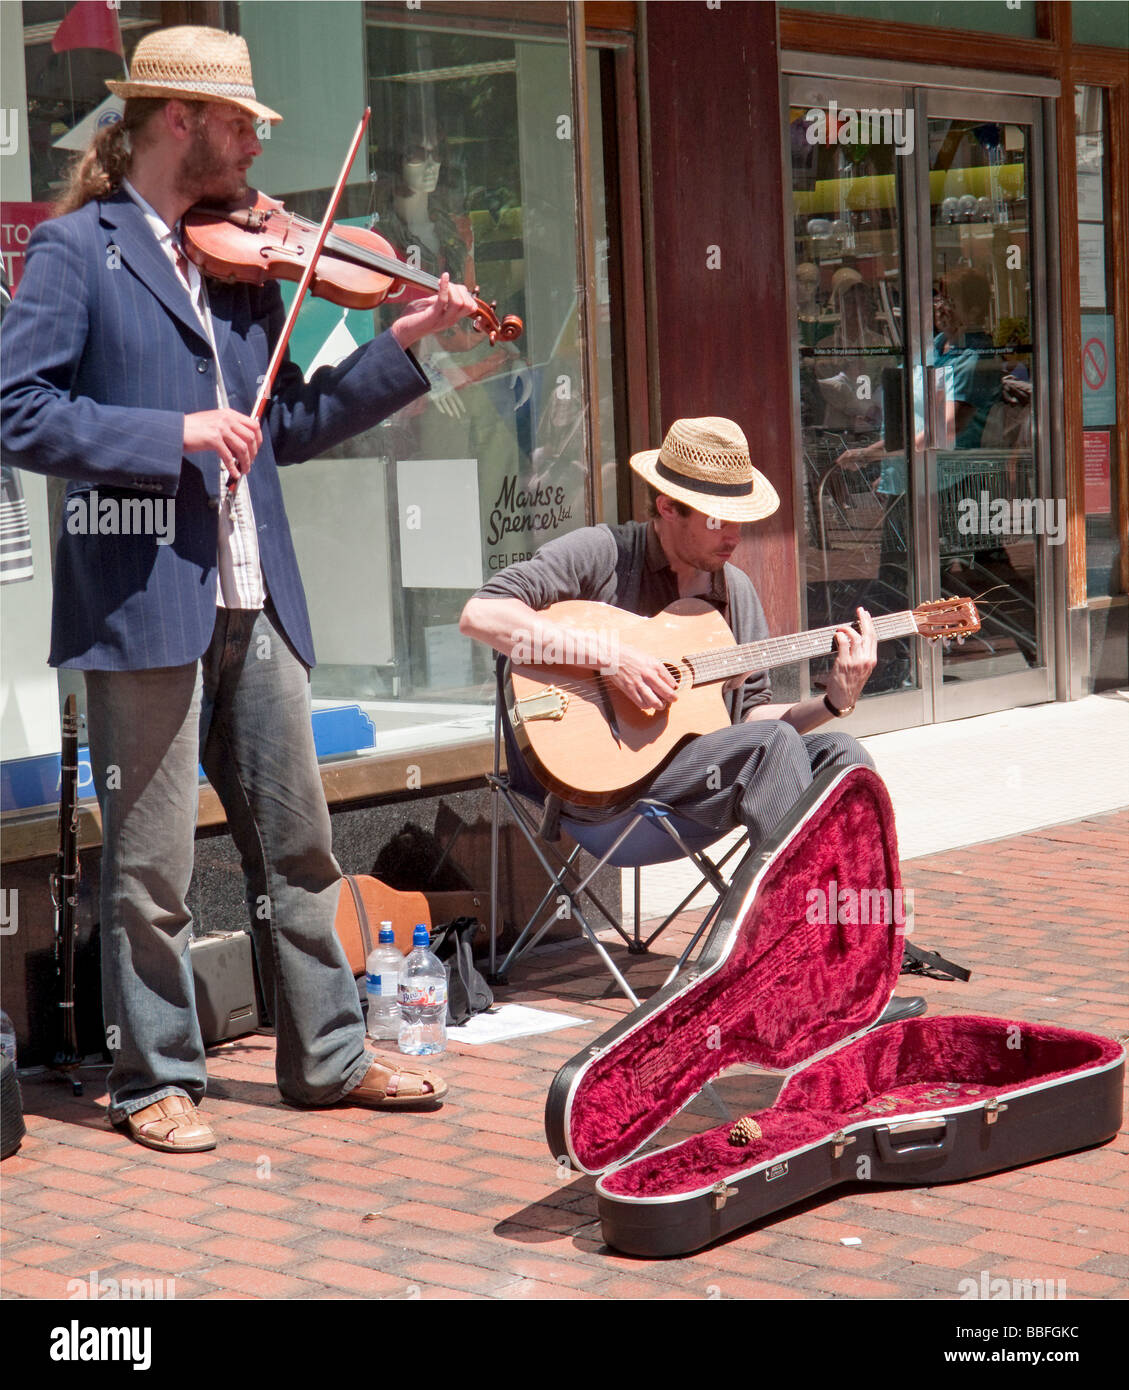 Two buskers play in a street in the sun - Stock Image